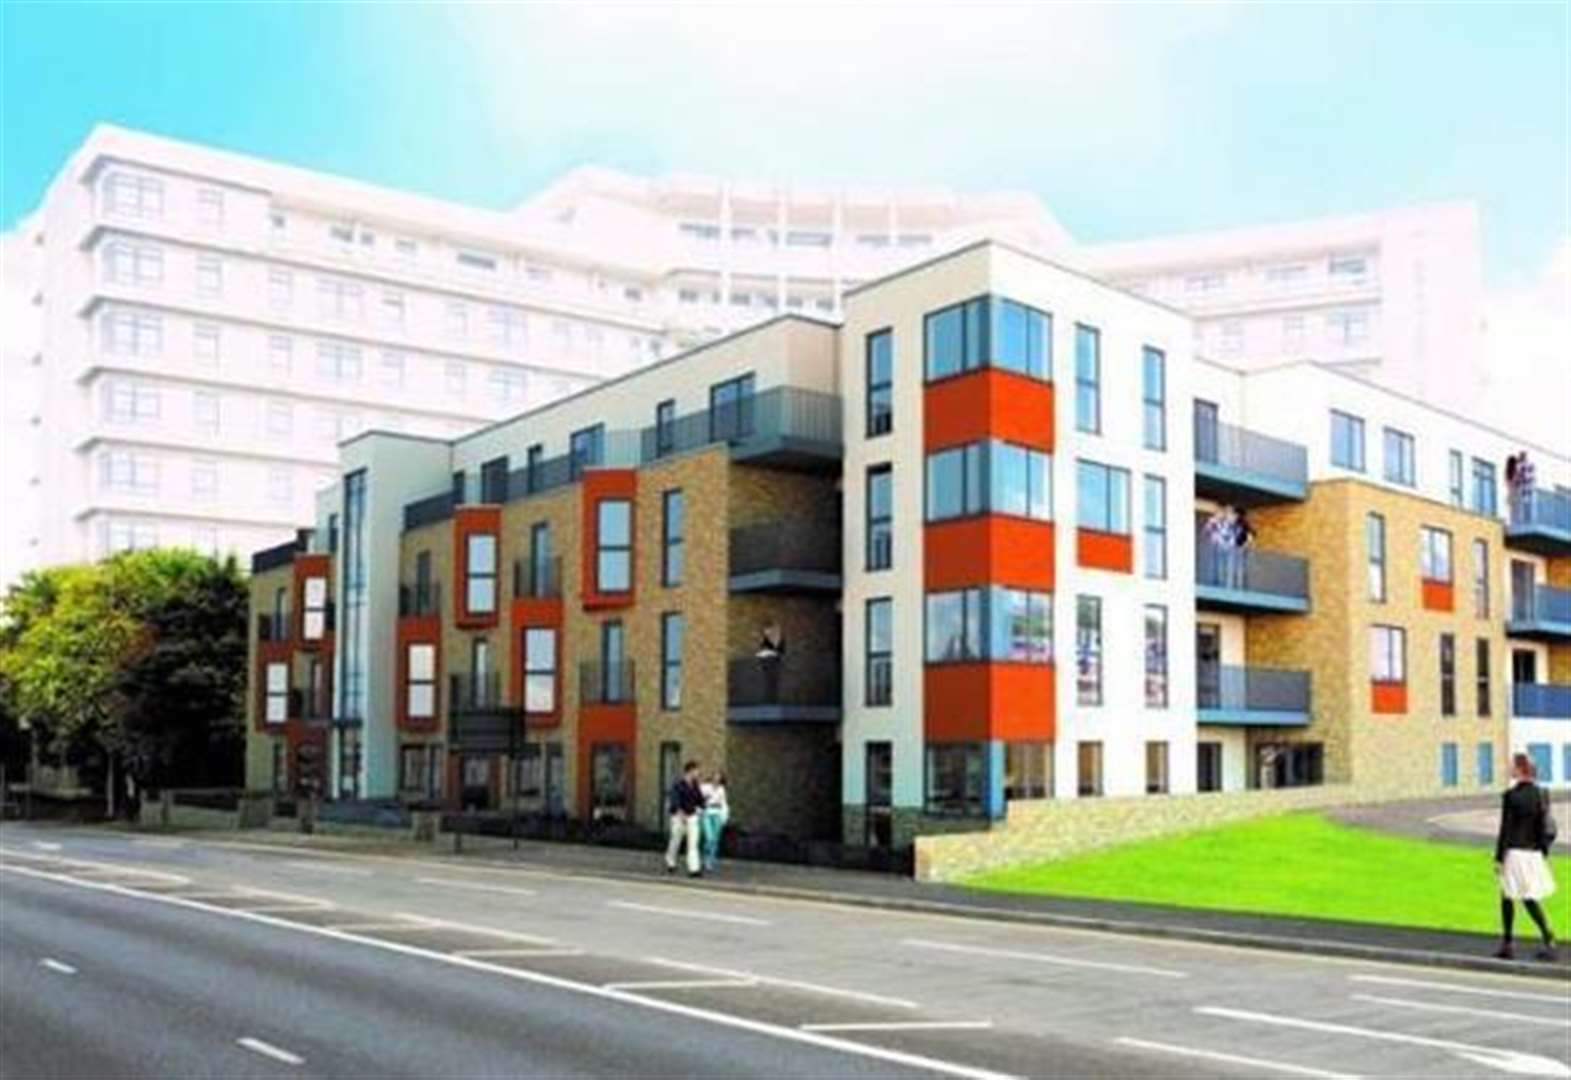 110 flats set to be finished this year